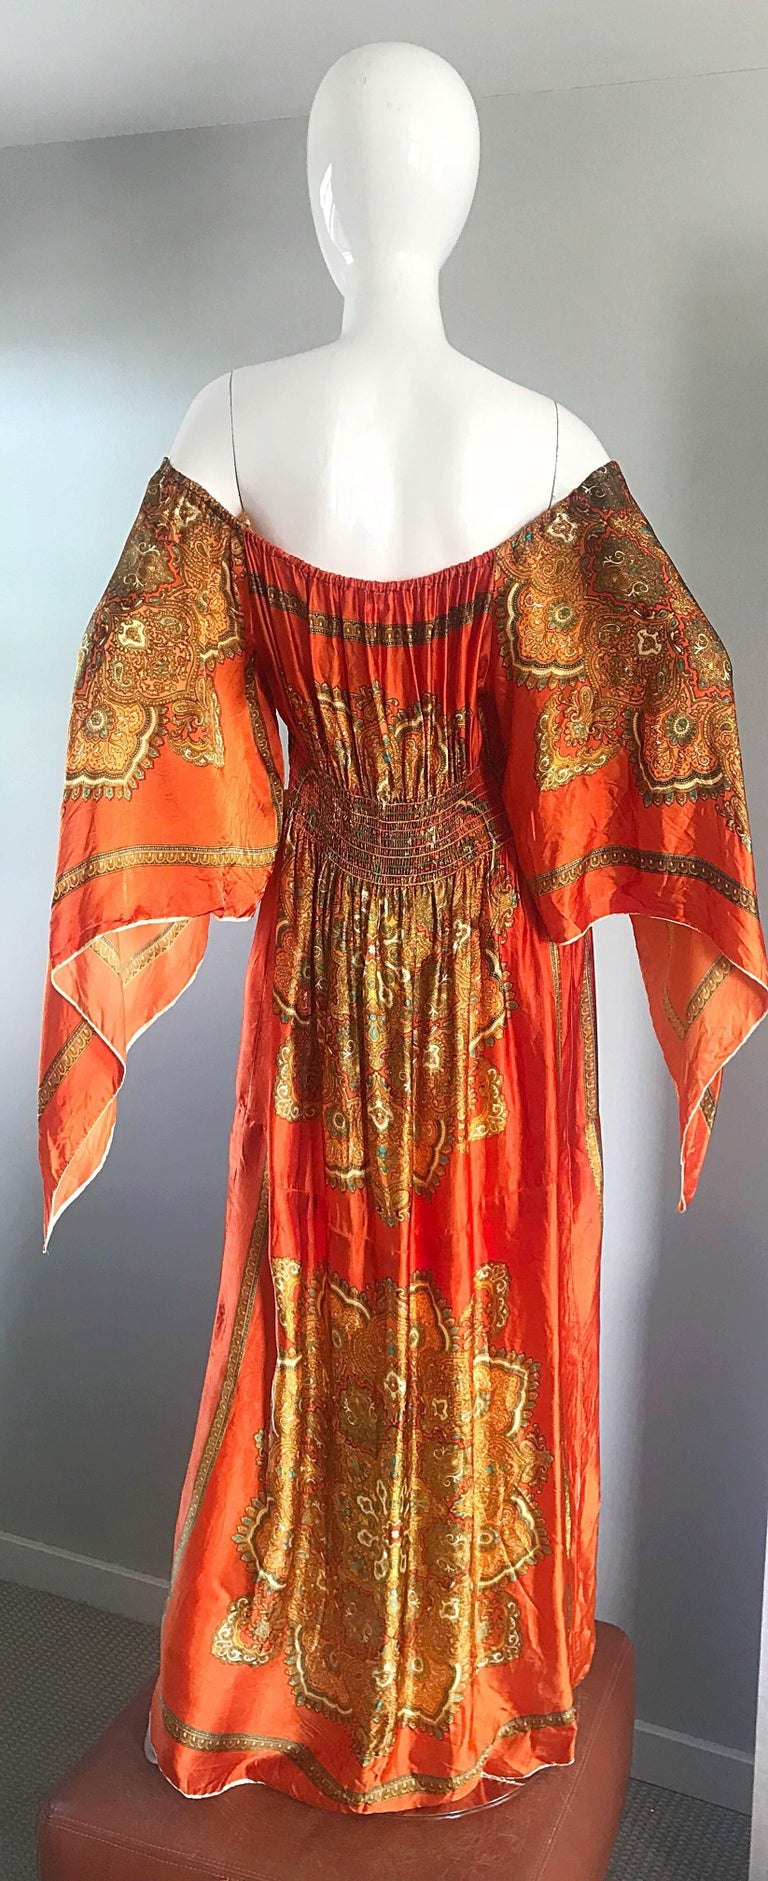 Amazing 1970s Off - Shoulder Boho Ethnic Print Silky Vintage 70s Maxi Dress In Excellent Condition For Sale In Chicago, IL